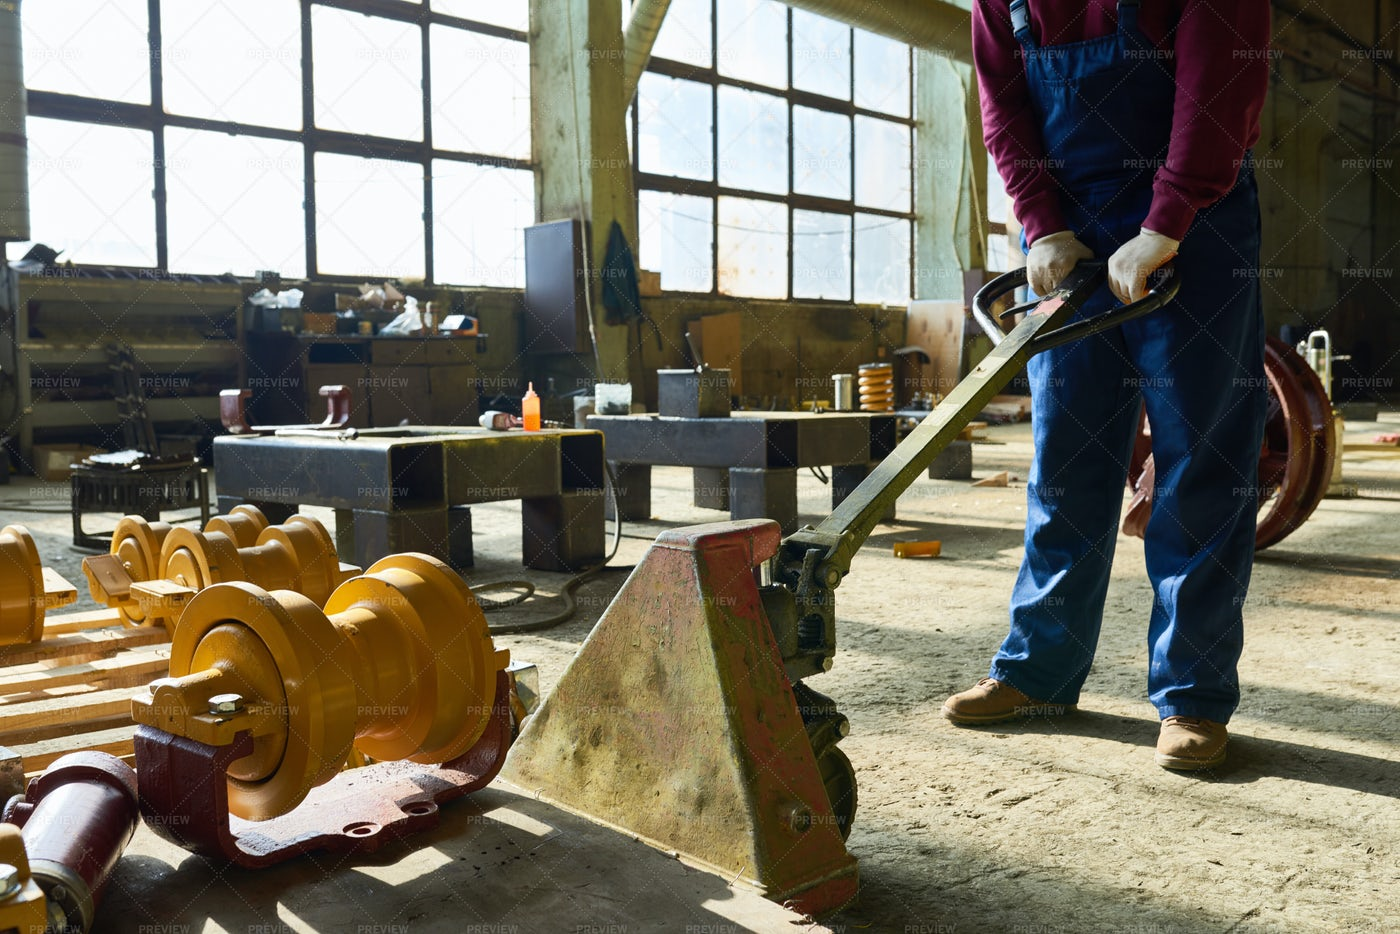 Using Pallet Jack In Warehouse: Stock Photos